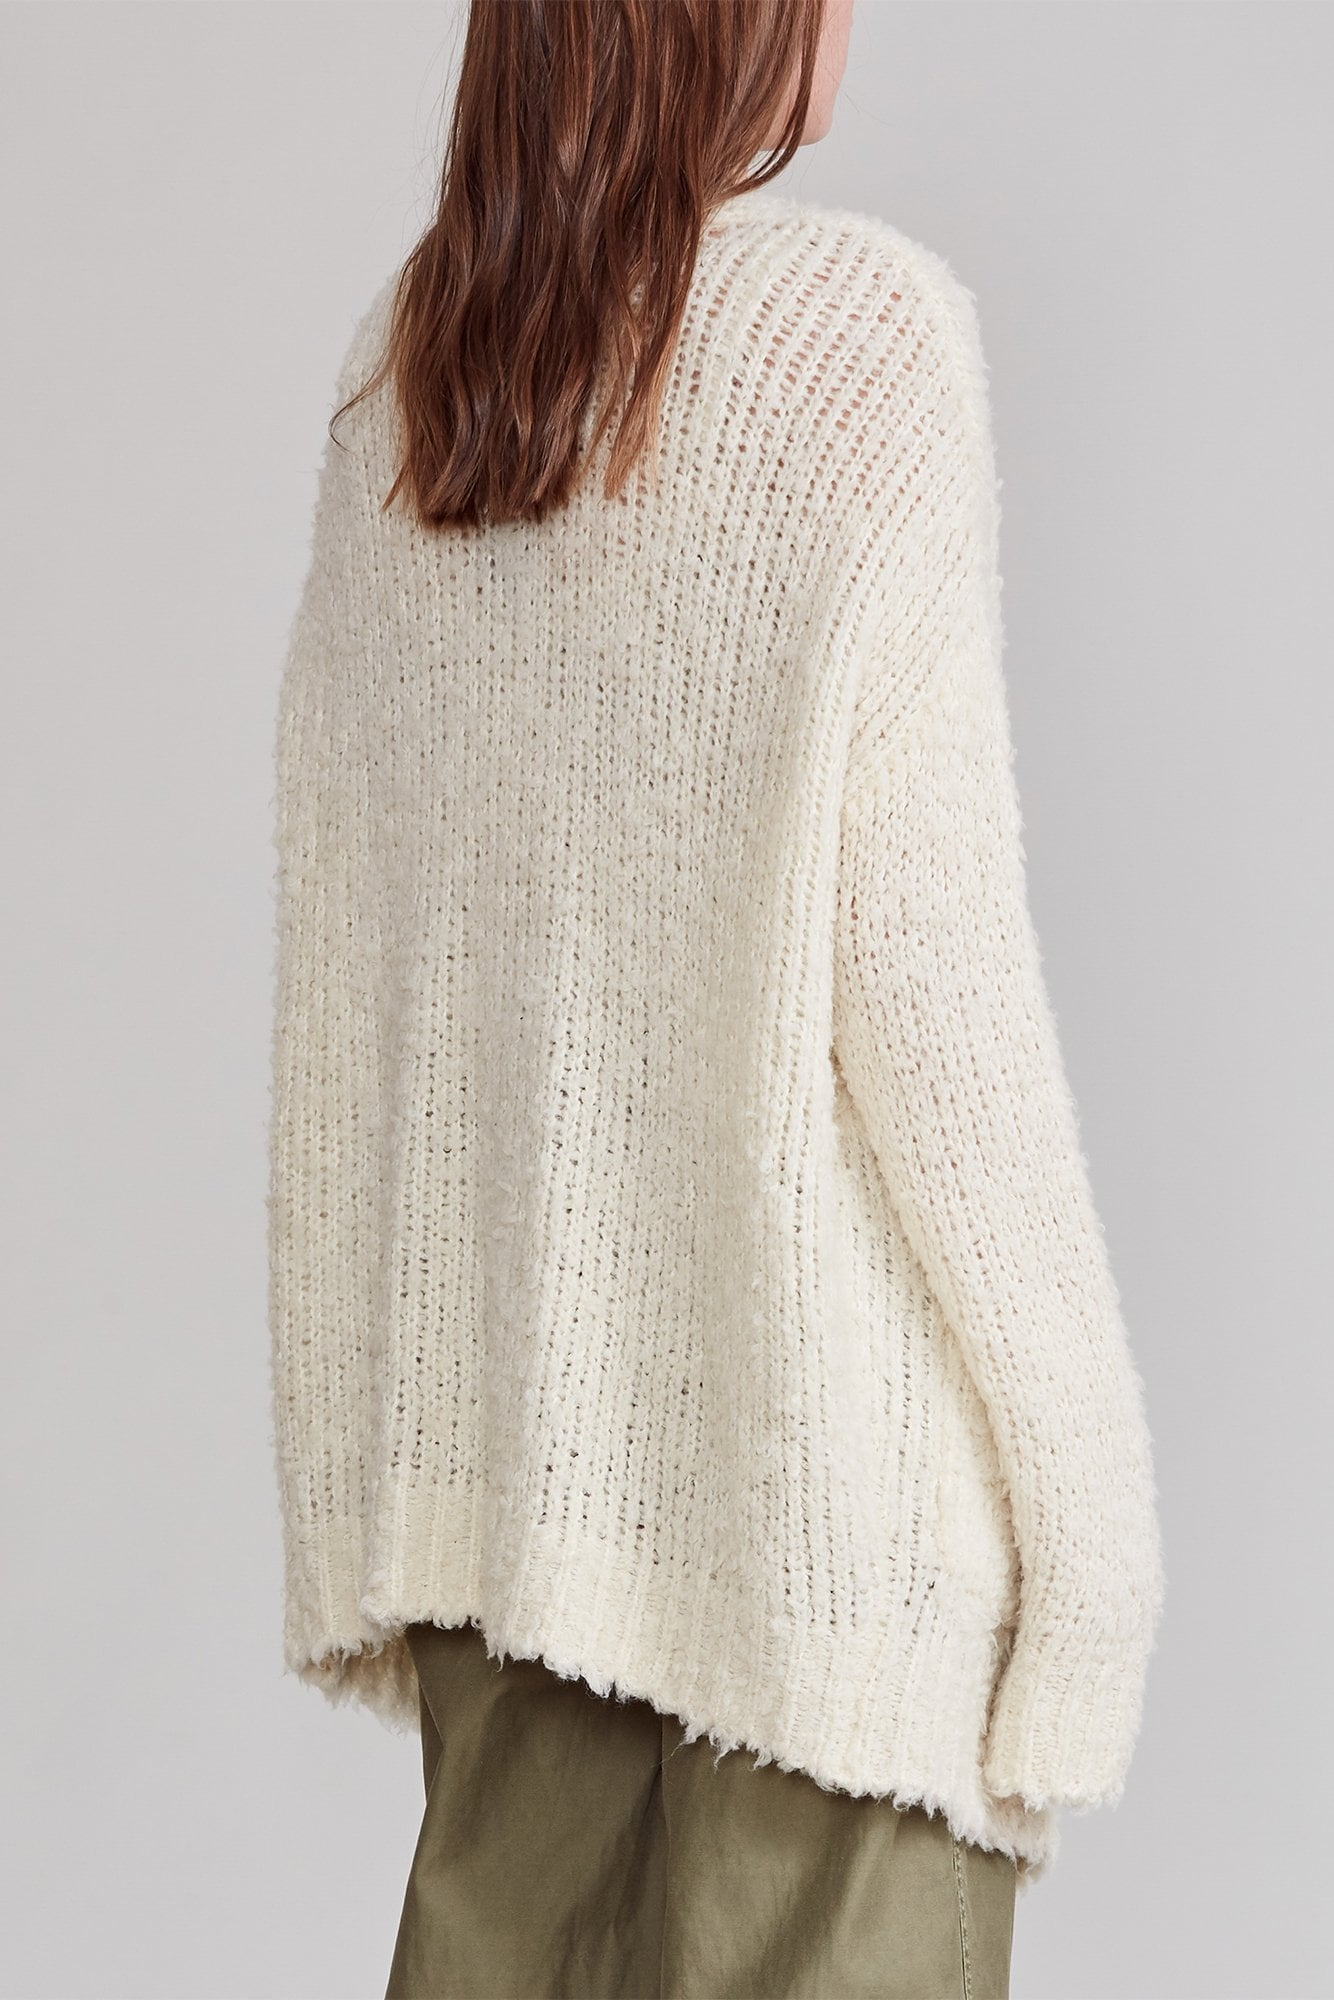 Teddy Bear Cardigan - Cream